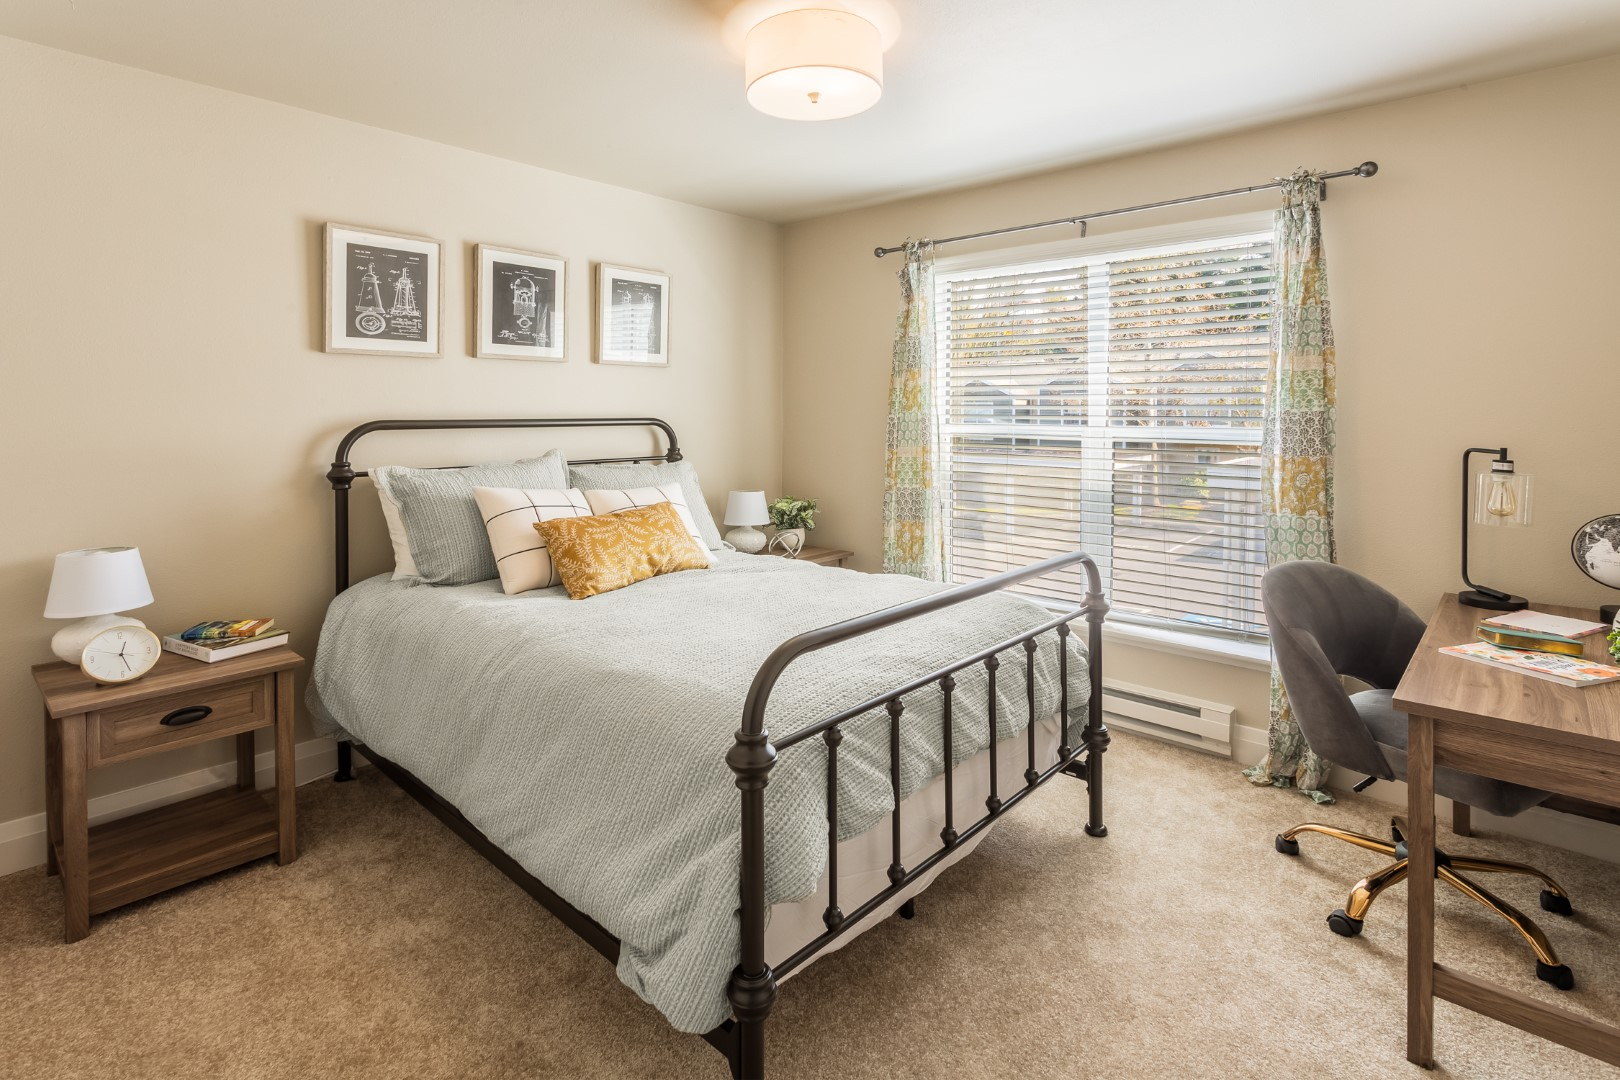 A made bed is well lit in this daylight bedroom.